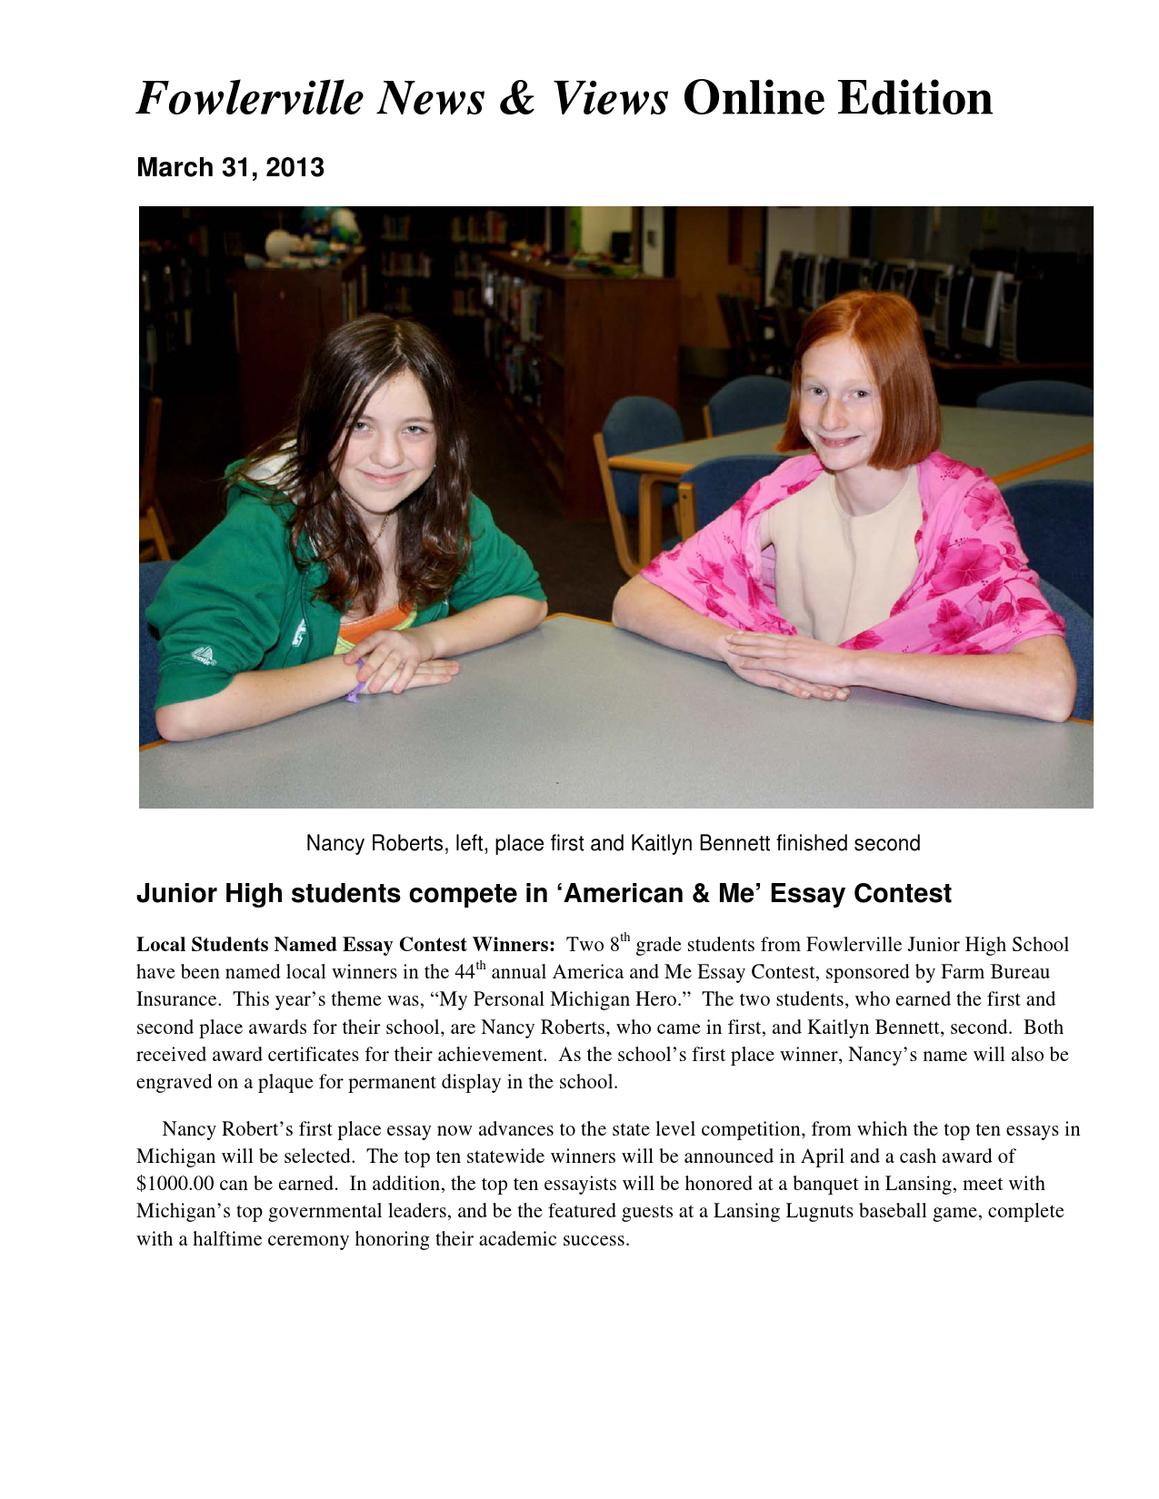 farm bureau insurance america and me essay contest Ca — some people say america is  statewide winners in farm bureau insurance's america and me essay contest the theme of the annual contest.